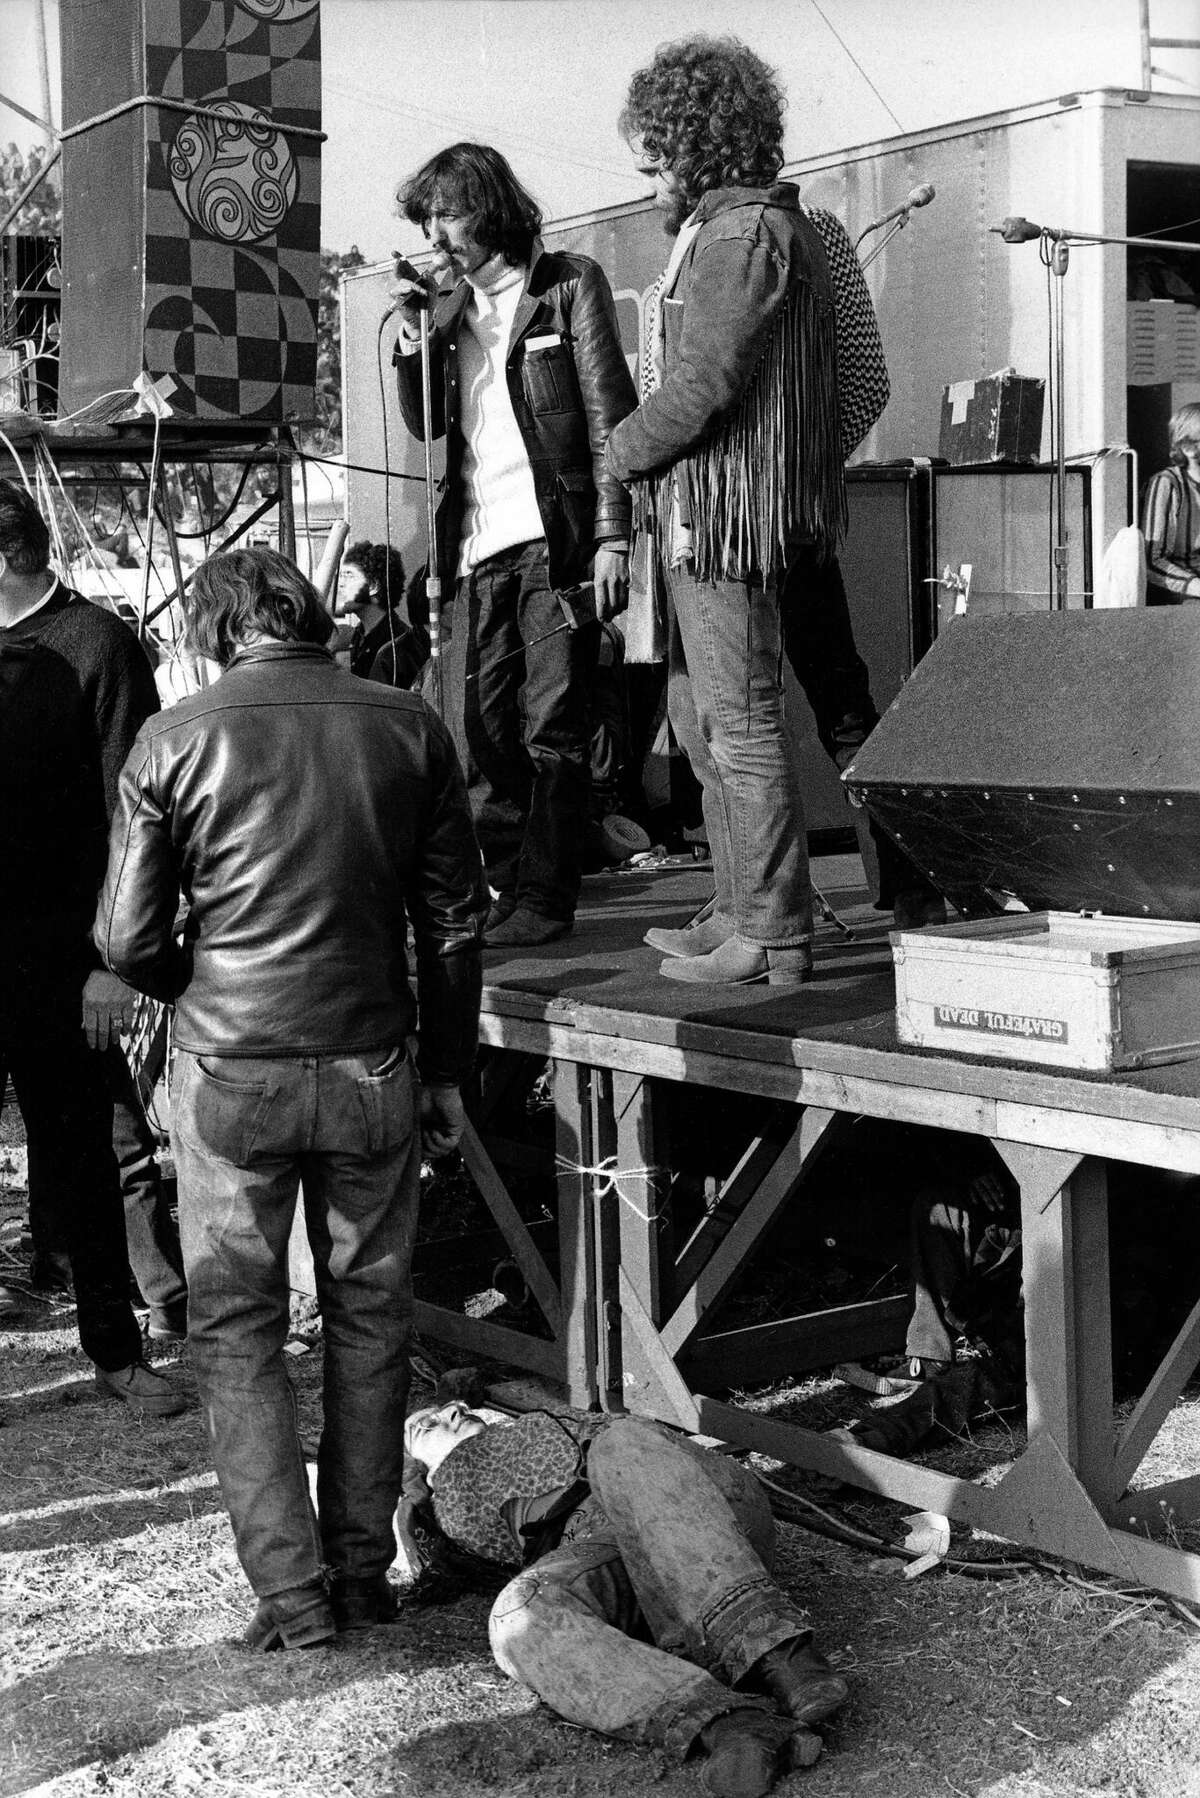 A girl lies in front of the stage as The Rolling Stones tour manager Sam Cutler tries to placate the crowd at The Altamont Speedway on December 6, 1969 in Tracy. Next to him is Michael Lang, one of the promoters of Woodstock earlier that year.